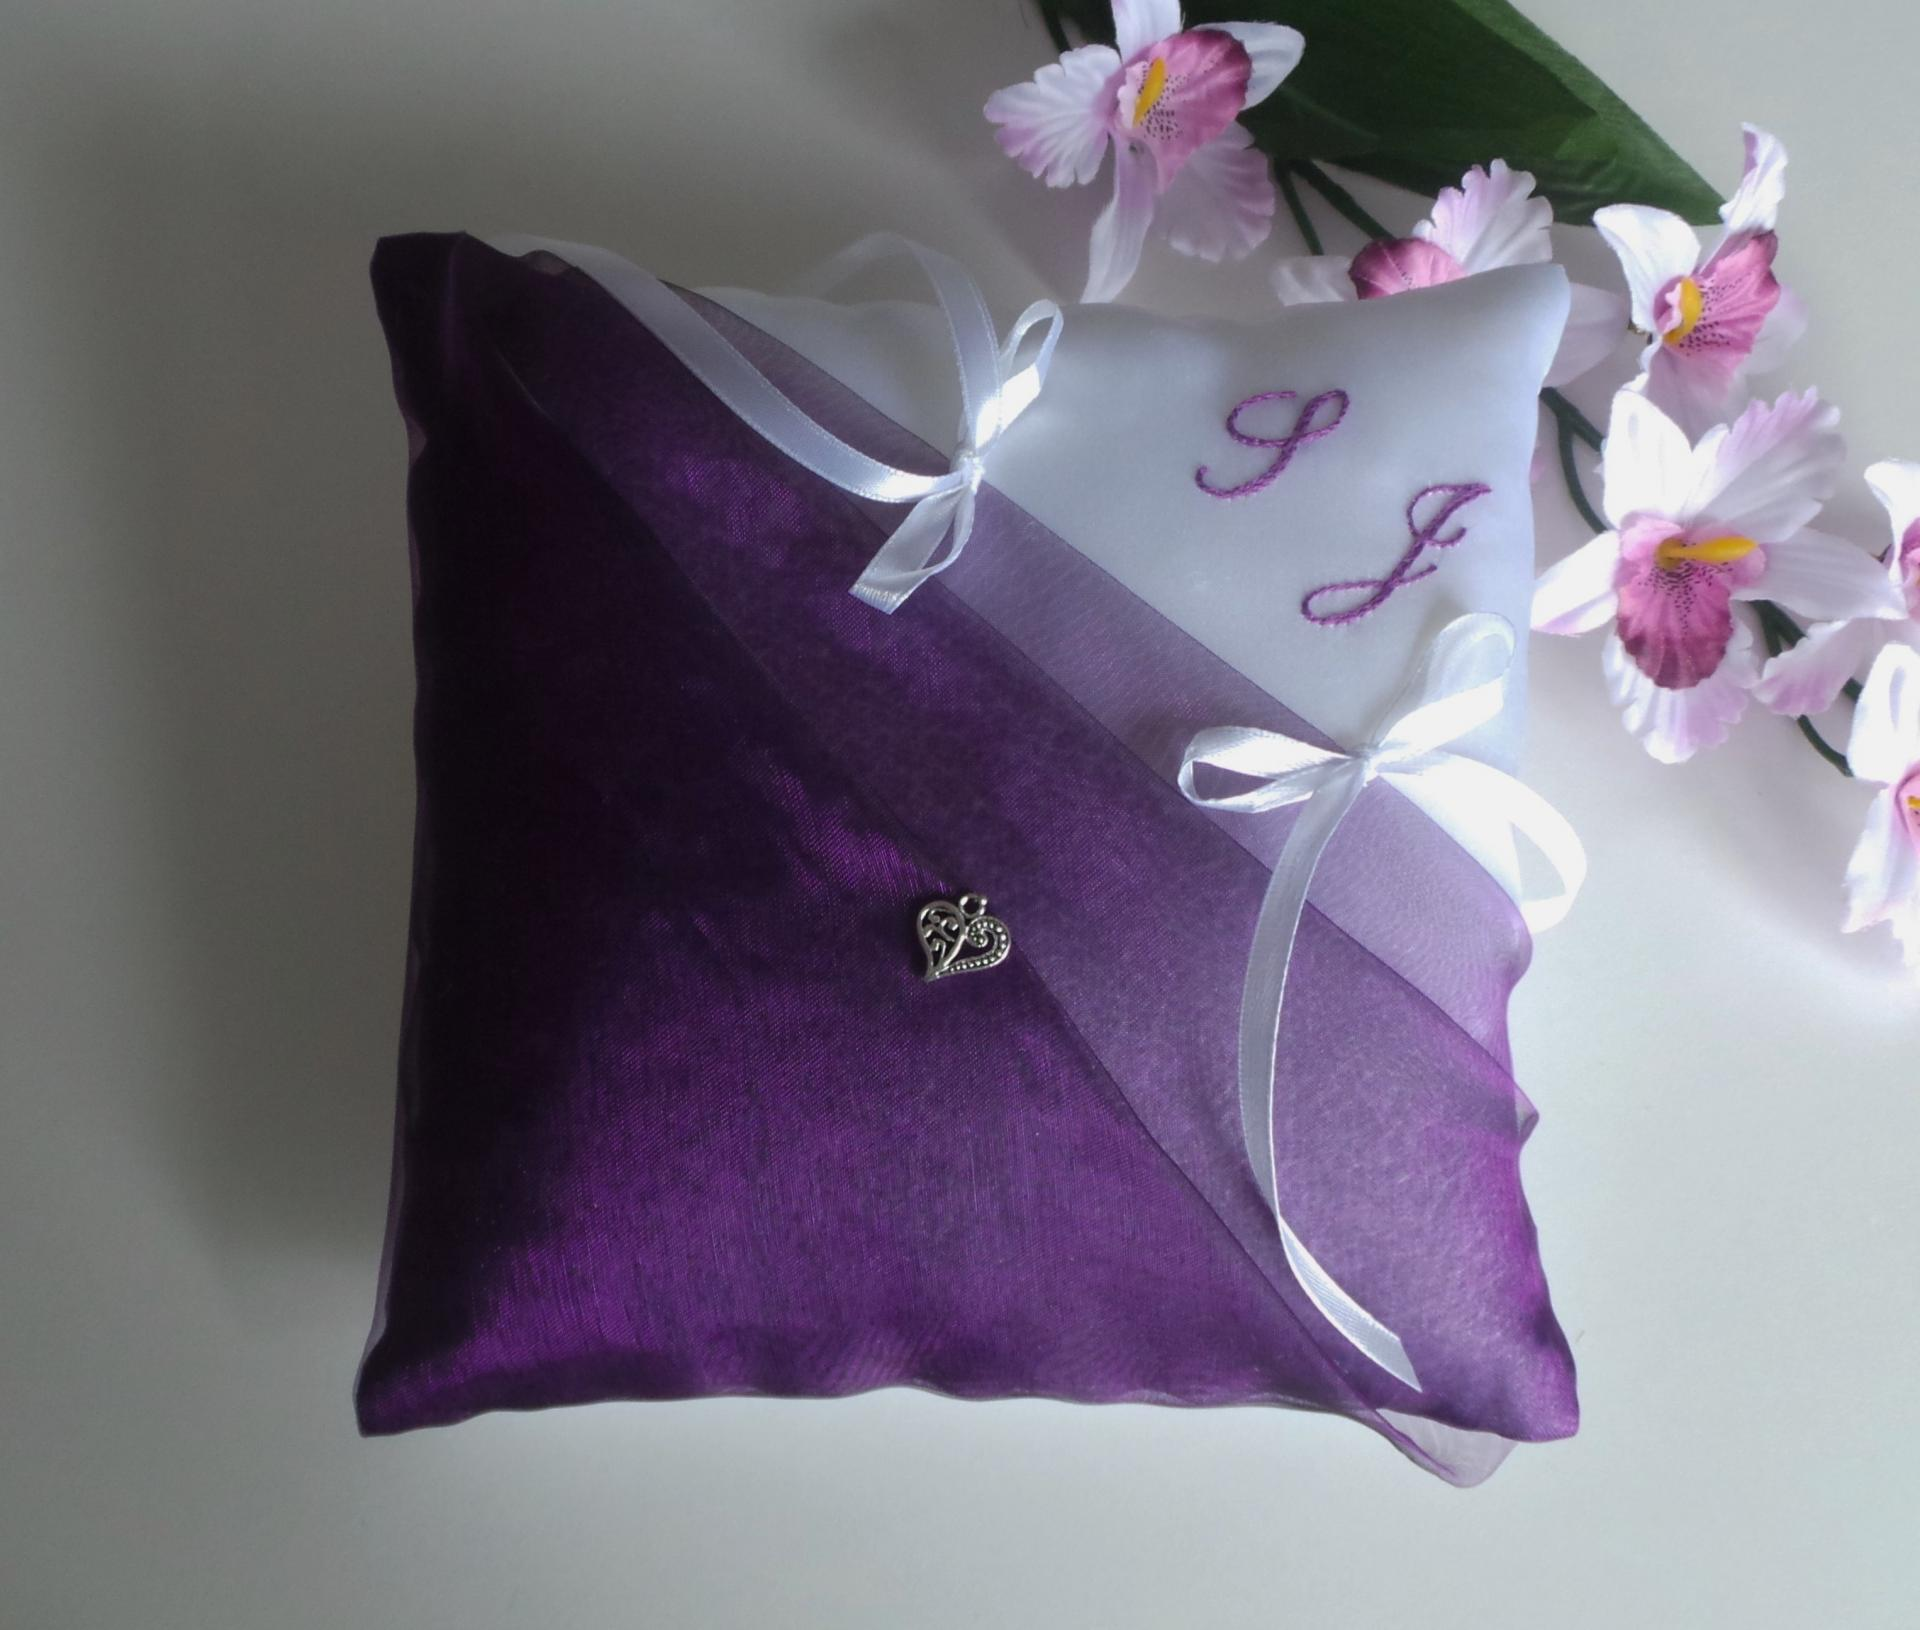 Coussin mariage violet 1 1